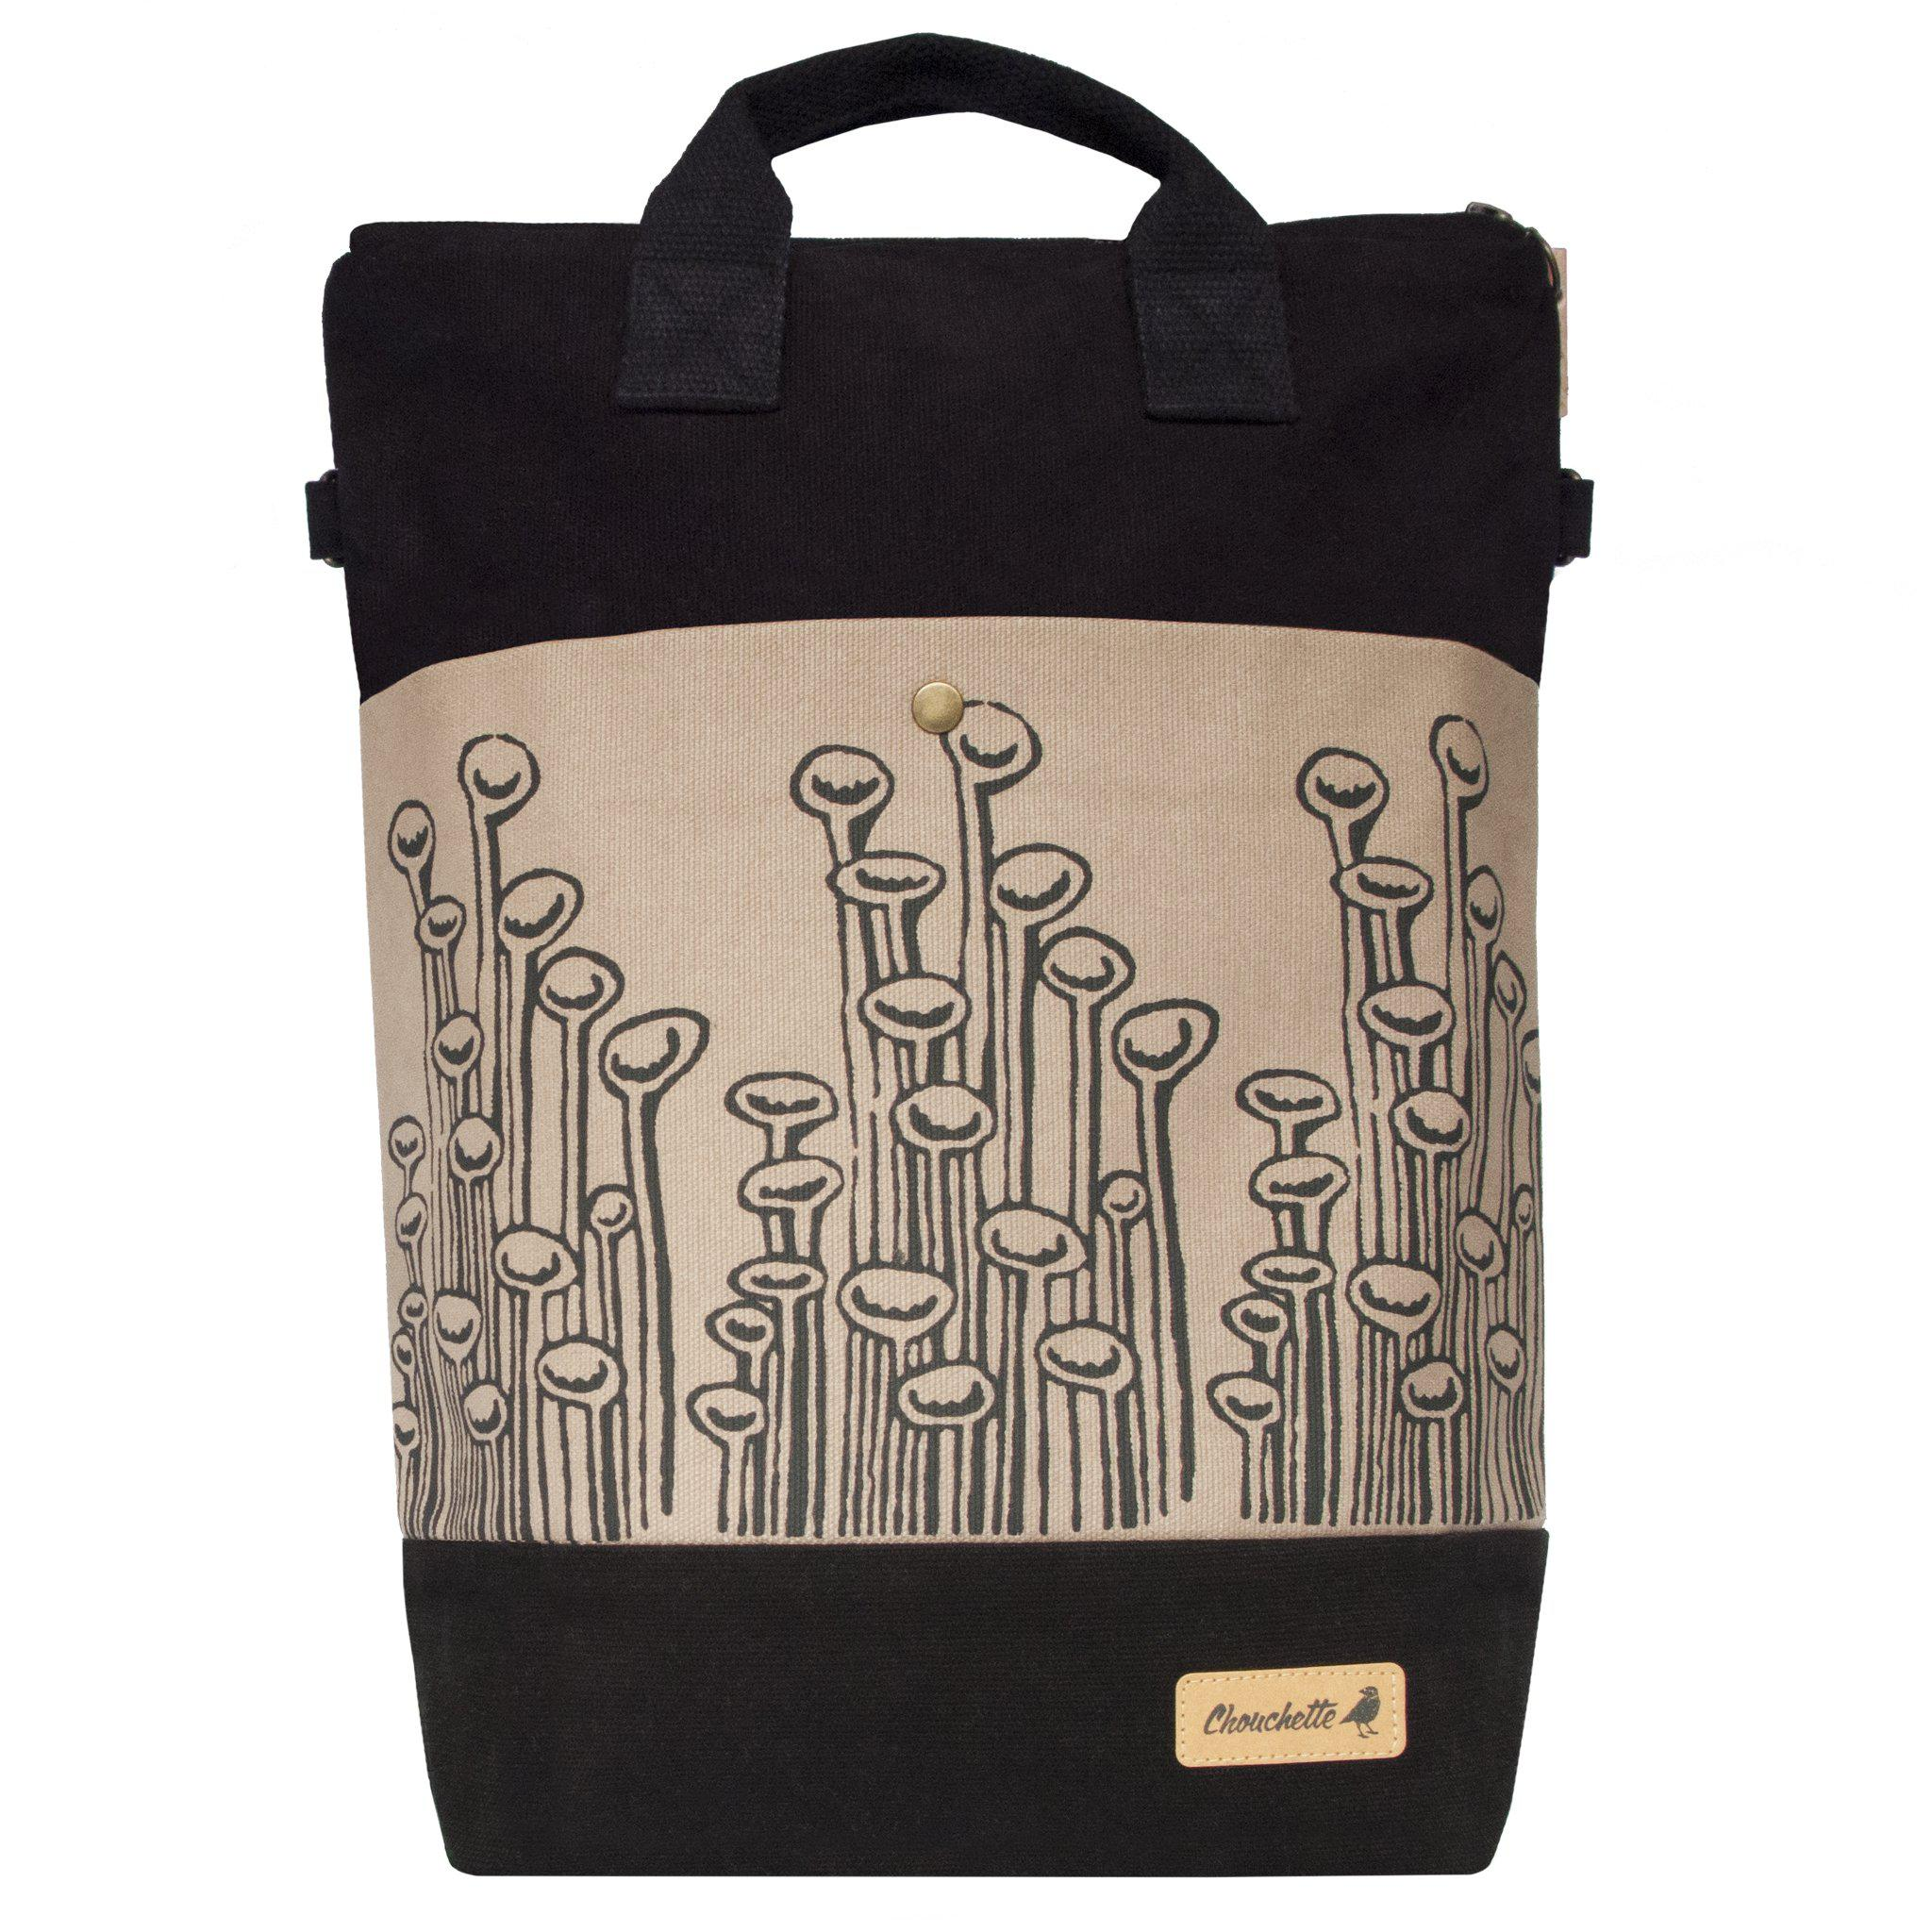 Black and beige 'Stuck To The Floor' convertible backpack, tote bag-Devrim Studio